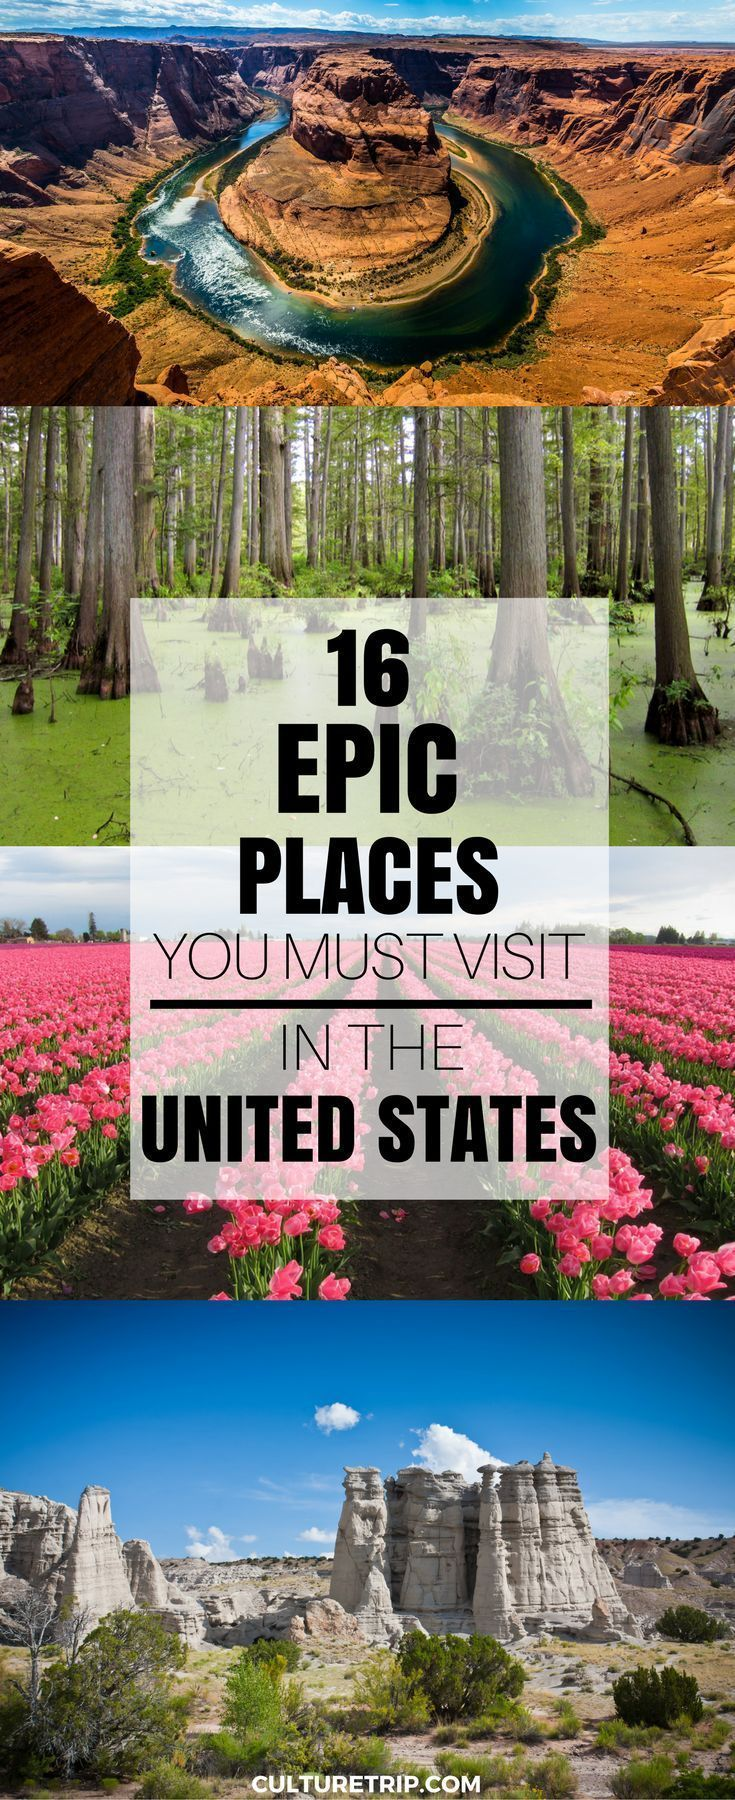 16 Epic Places in the United States Even Americans Don't Know About -   19 travel destinations United States adventure ideas